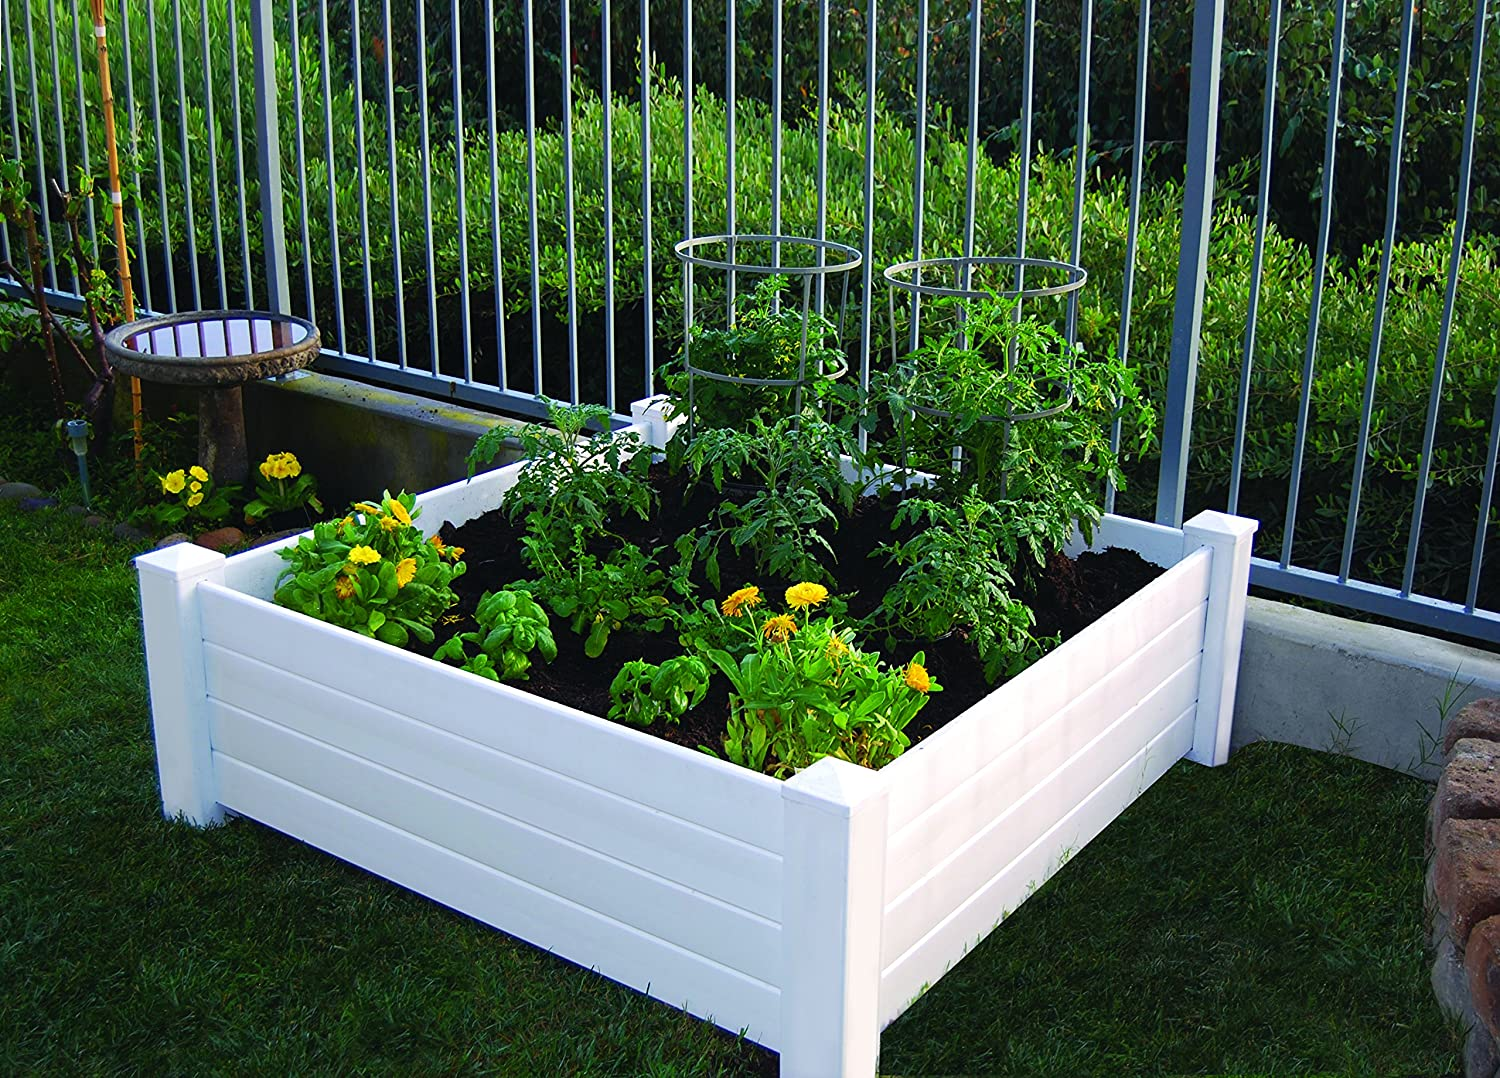 Amazoncom NuVue Products Raised 48 by 48 by 15Inch Garden Box